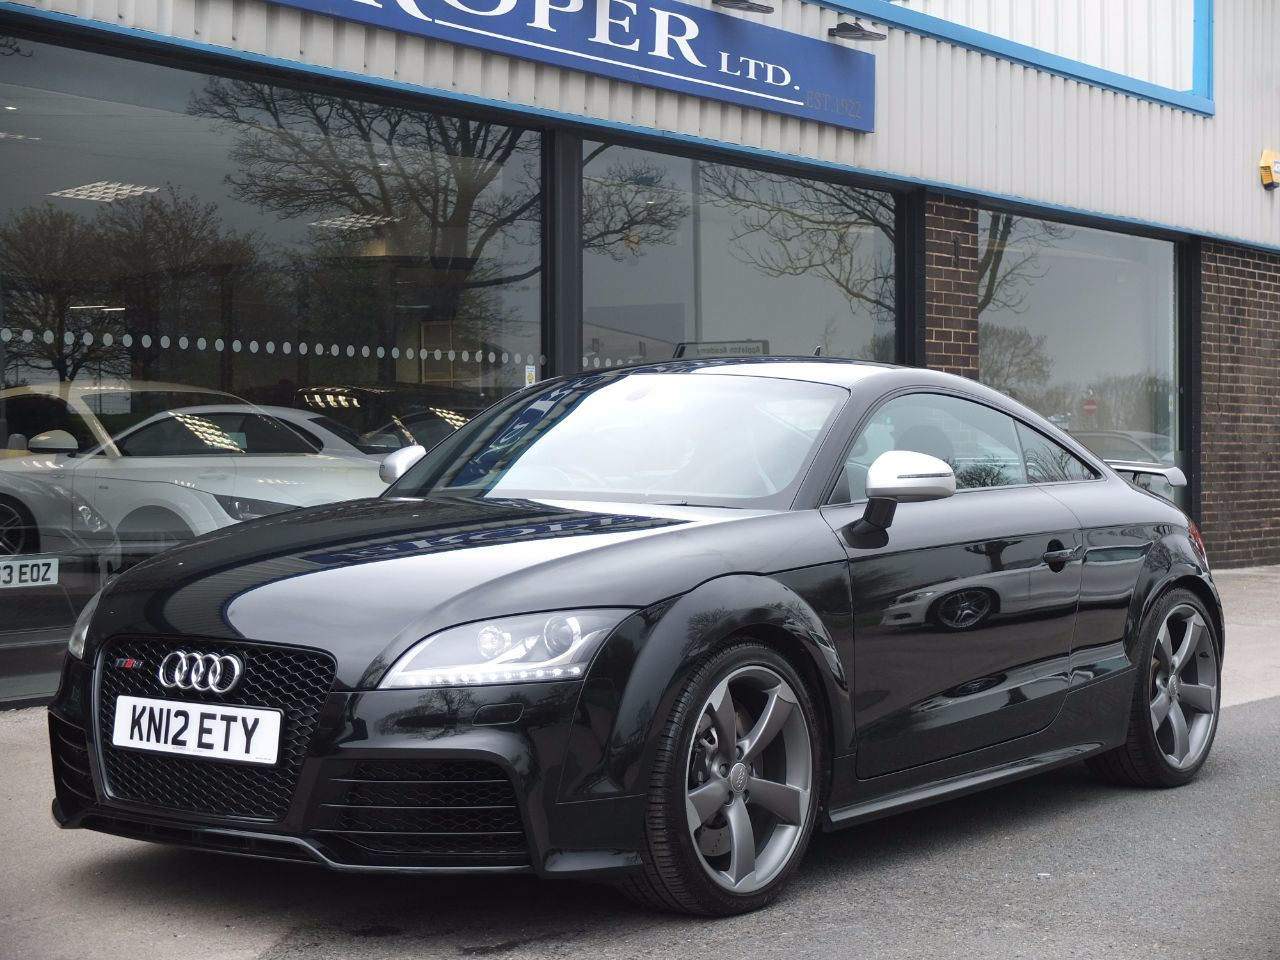 Audi TT RS 2.5T FSI quattro Coupe S Tronic 340ps Coupe Petrol Phantom Black MetallicAudi TT RS 2.5T FSI quattro Coupe S Tronic 340ps Coupe Petrol Phantom Black Metallic at fa Roper Ltd Bradford